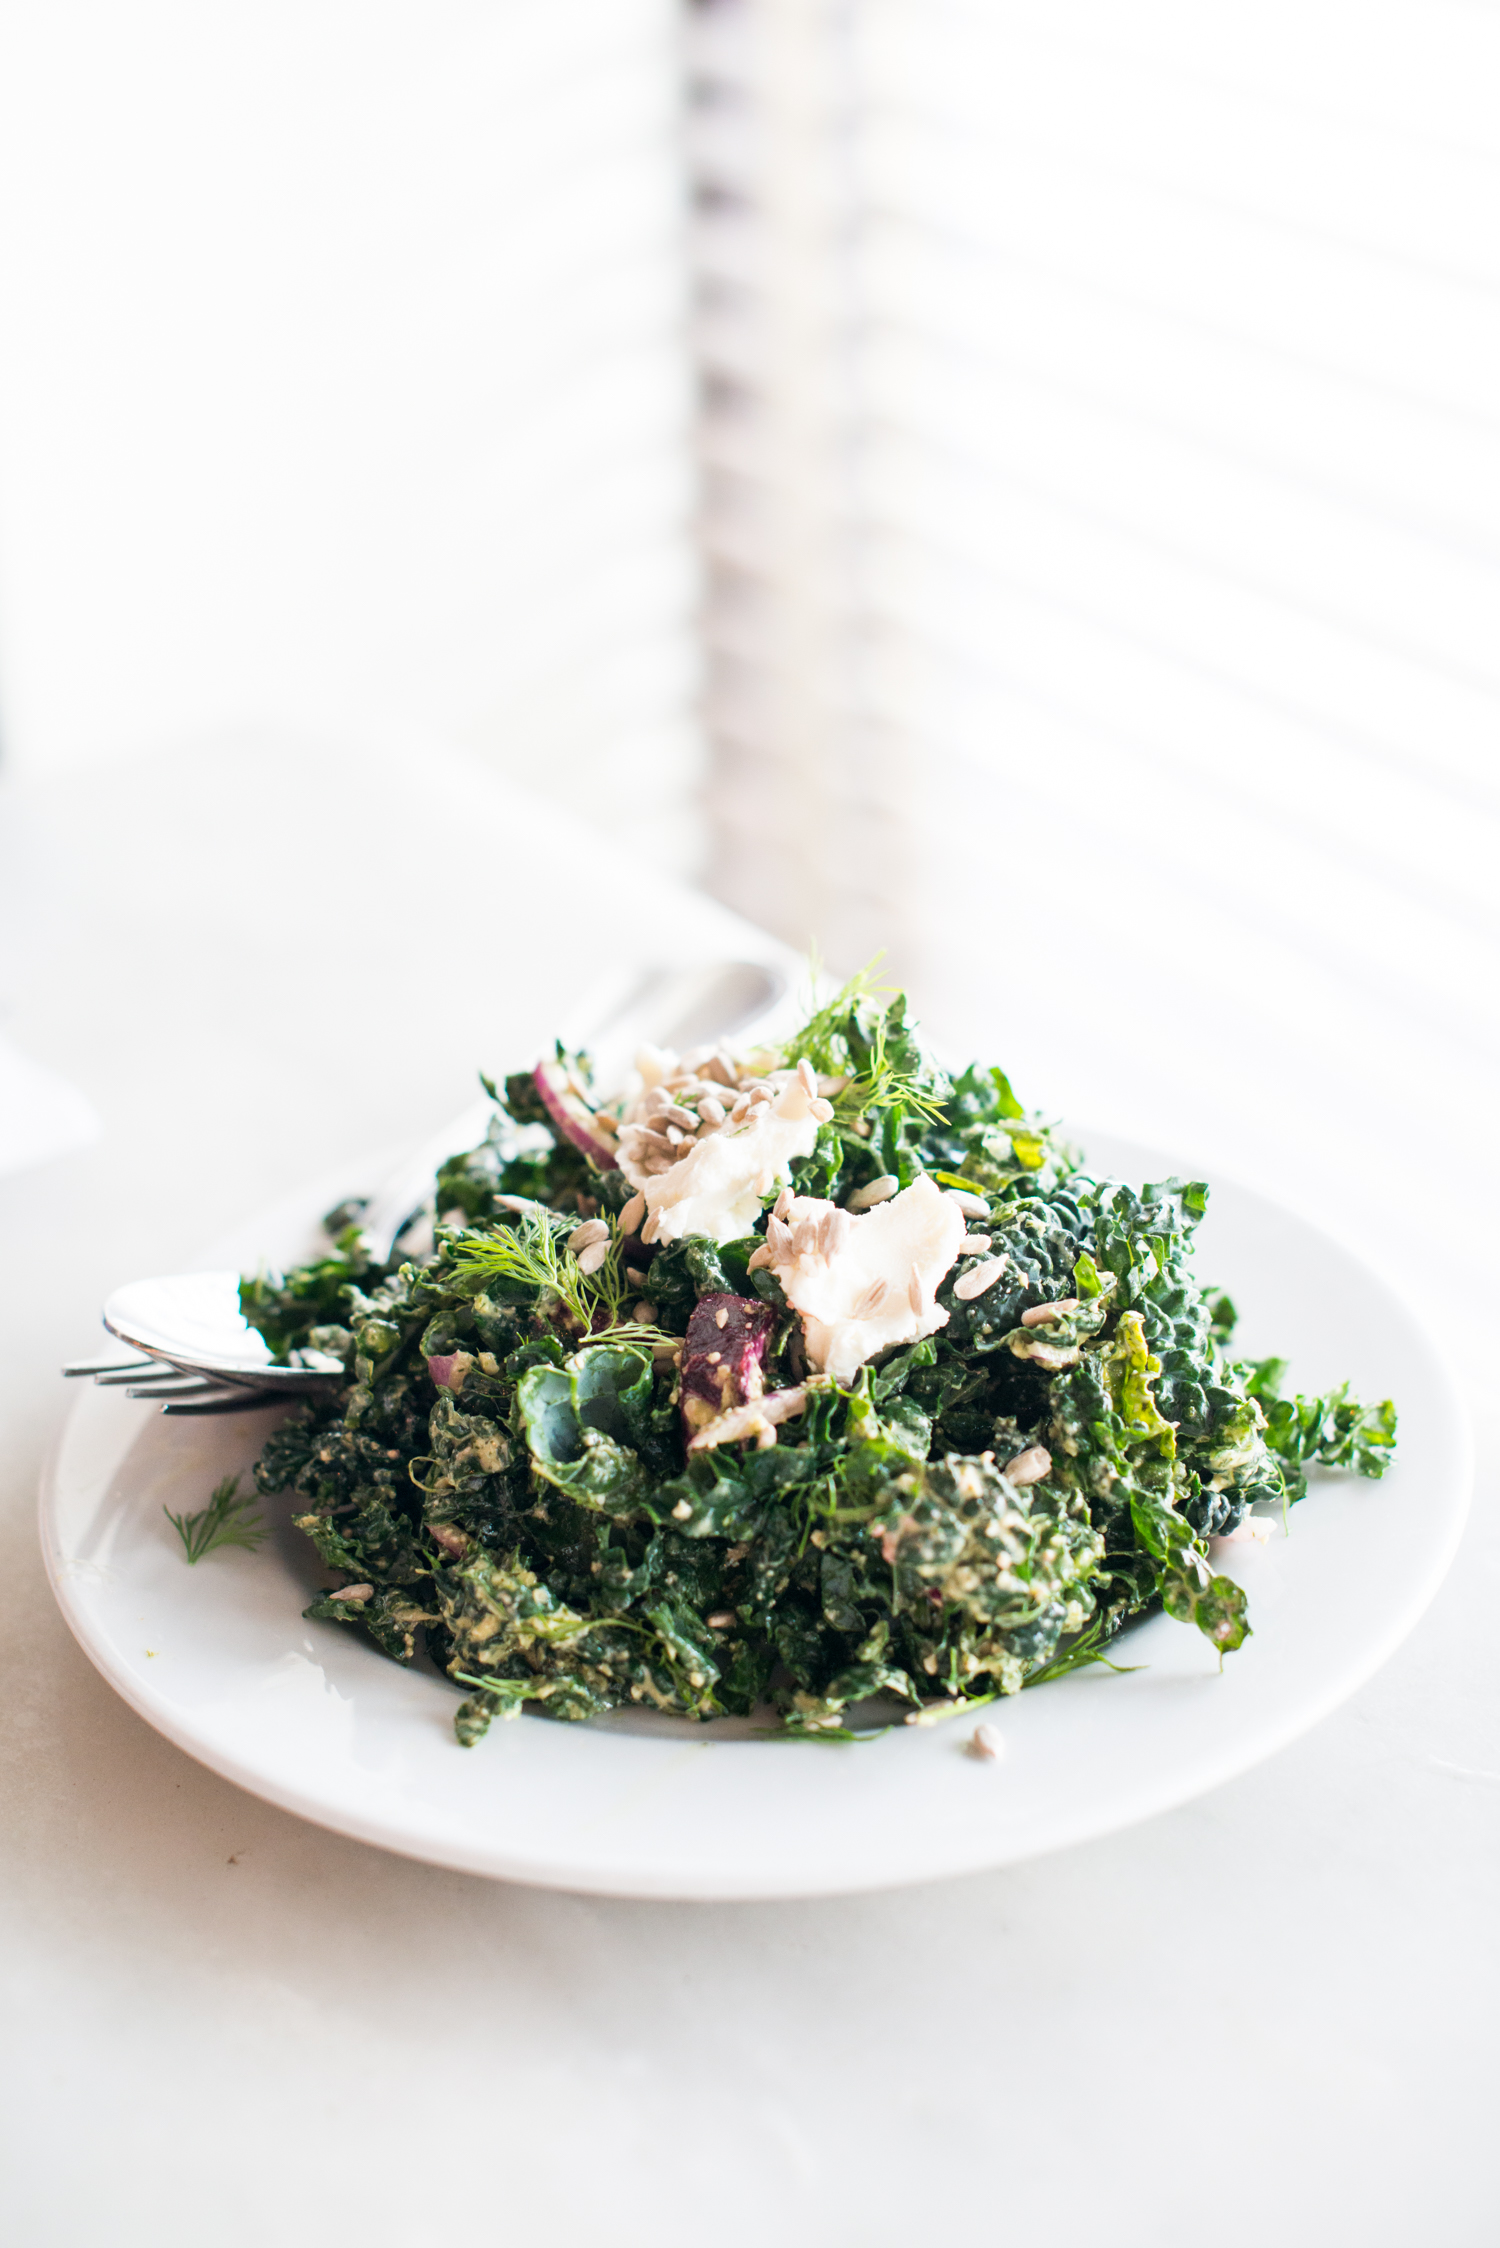 Kale salad with roasted beets, onion, goat cheese, and sunflower seed dressing.